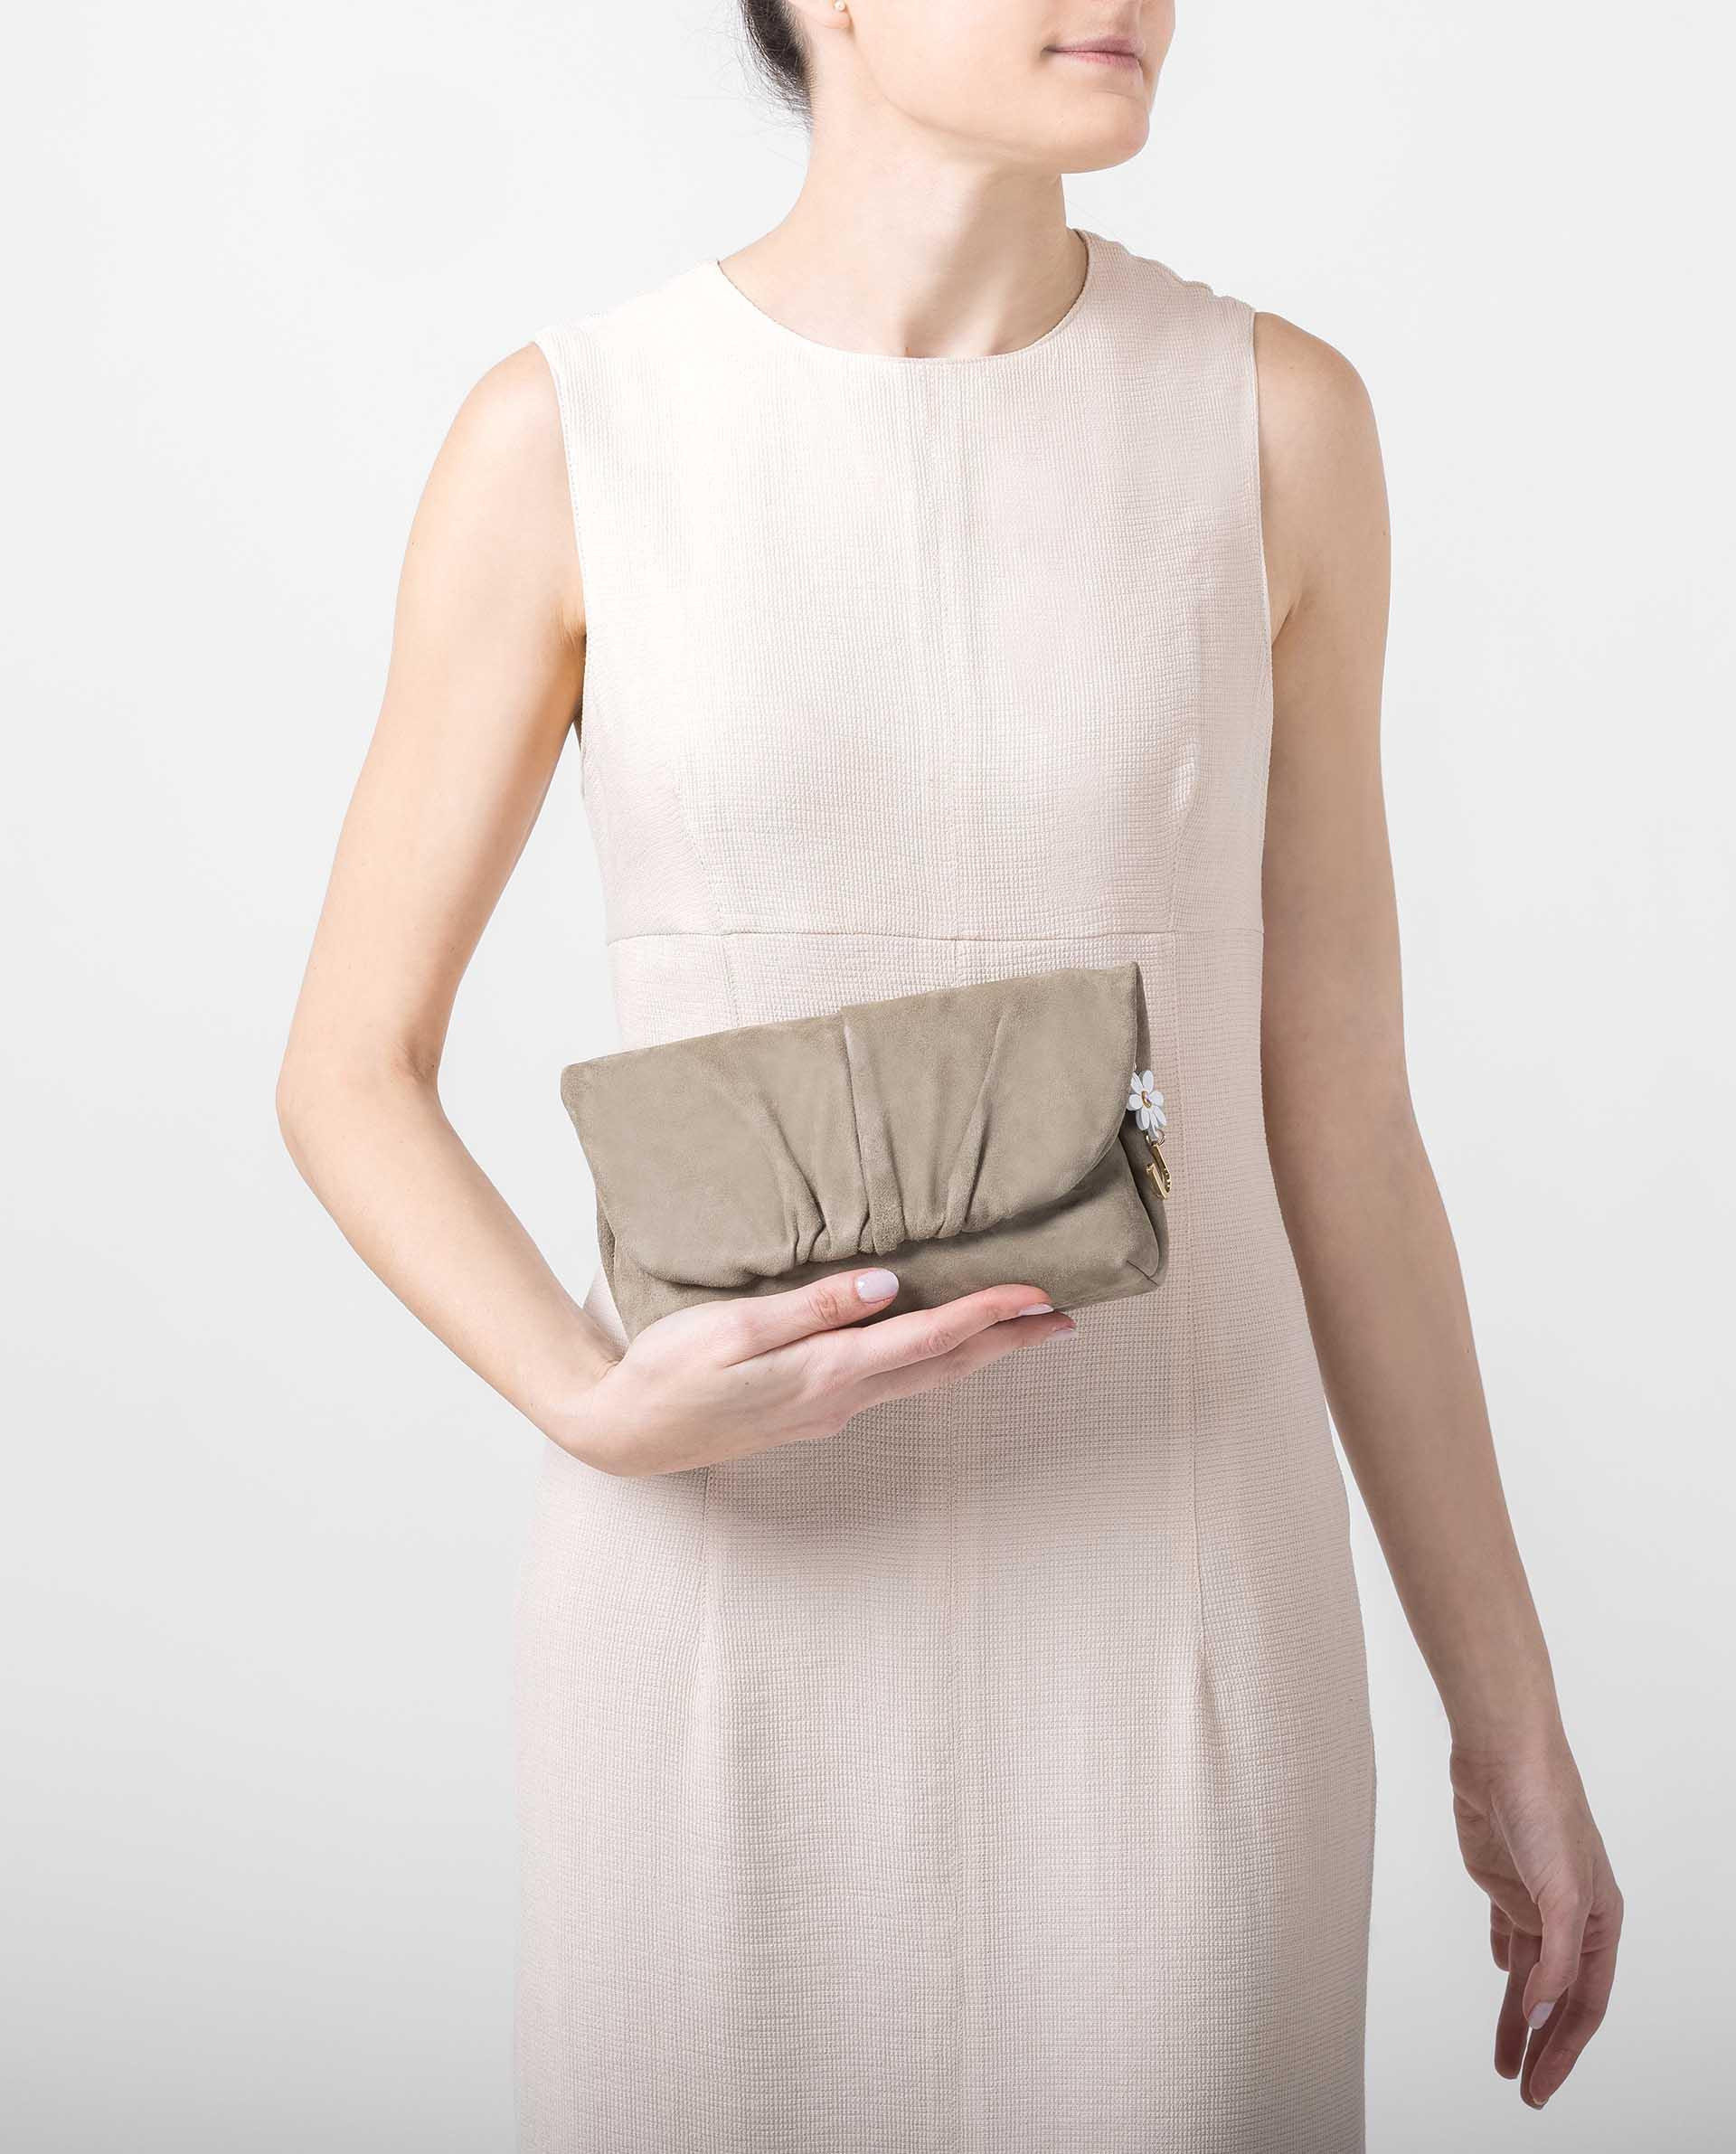 UNISA Small bag with detail of flower and